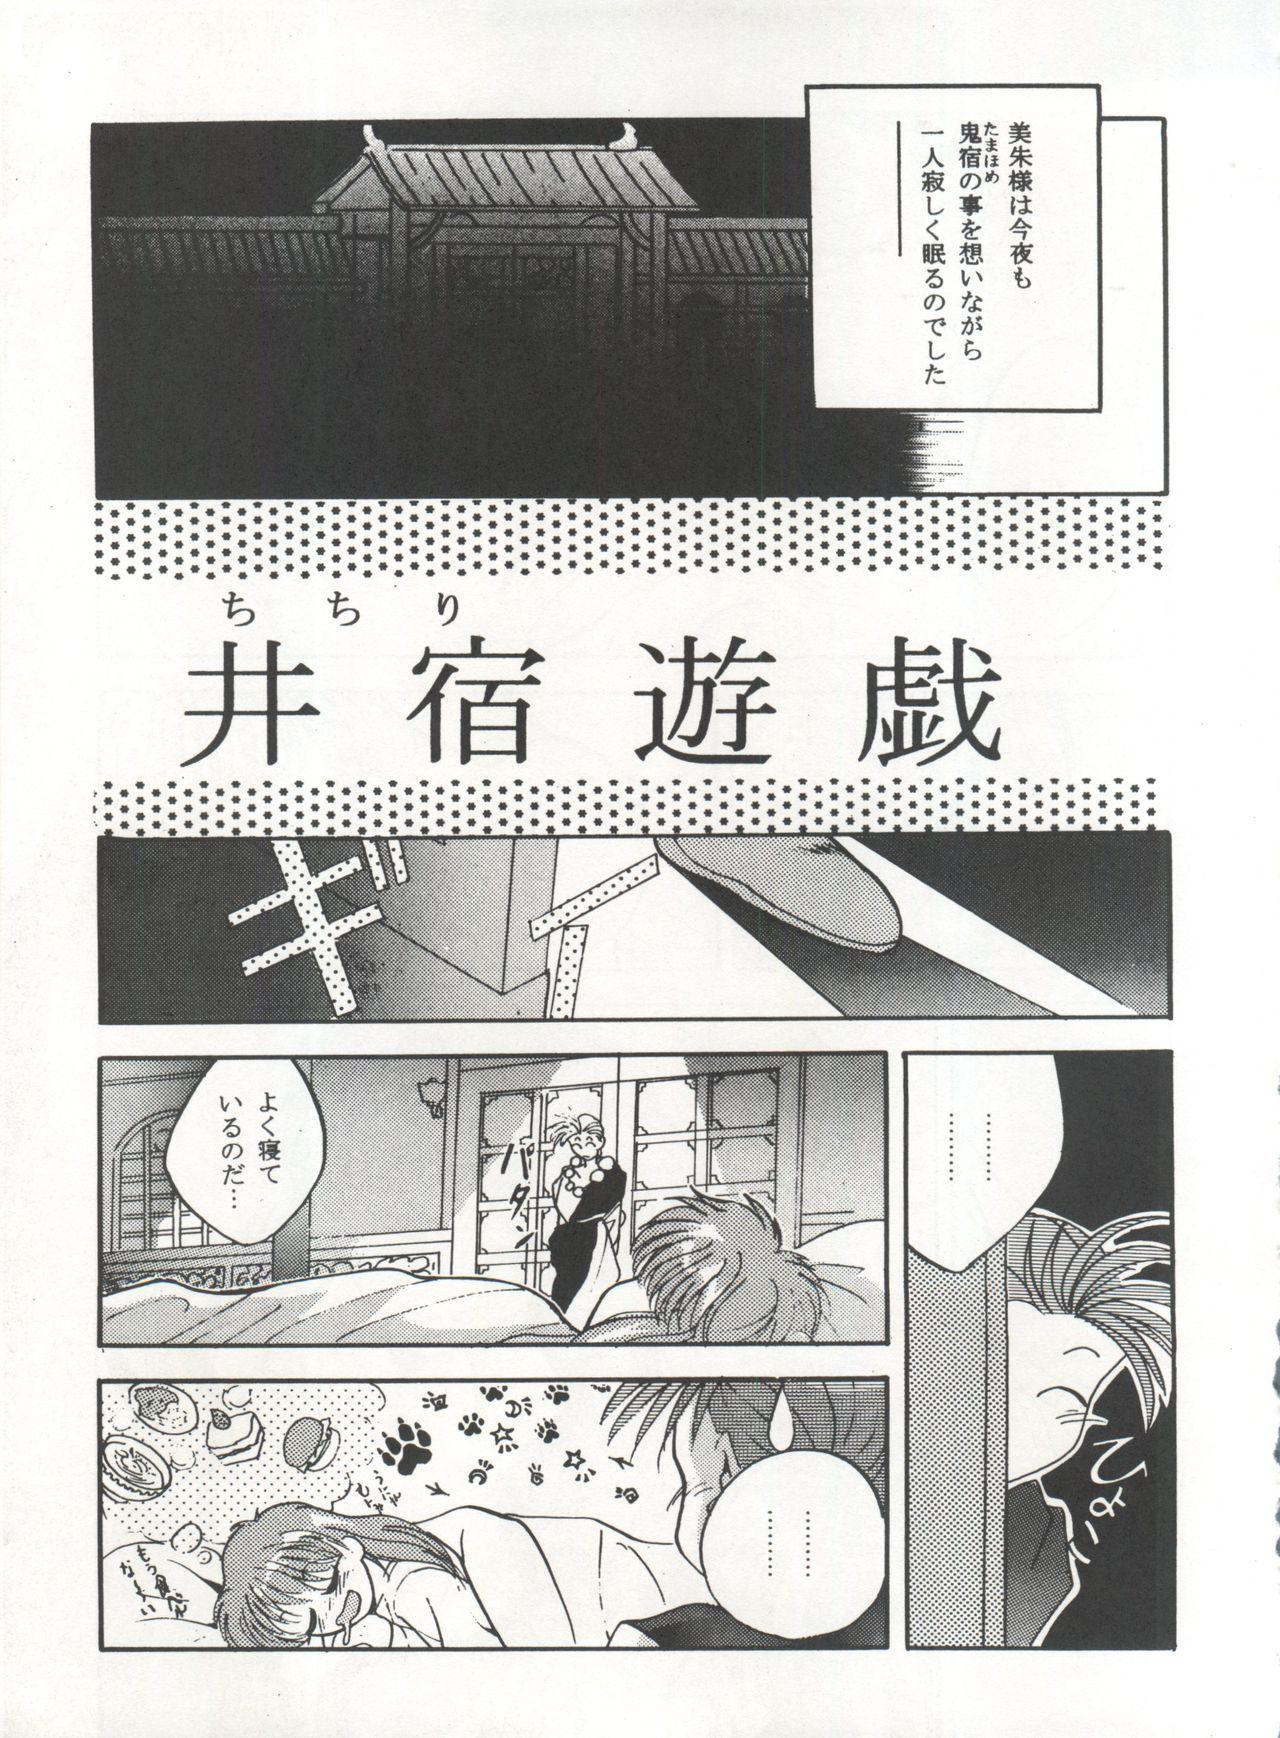 MOUSOU THEATER 6 + 40